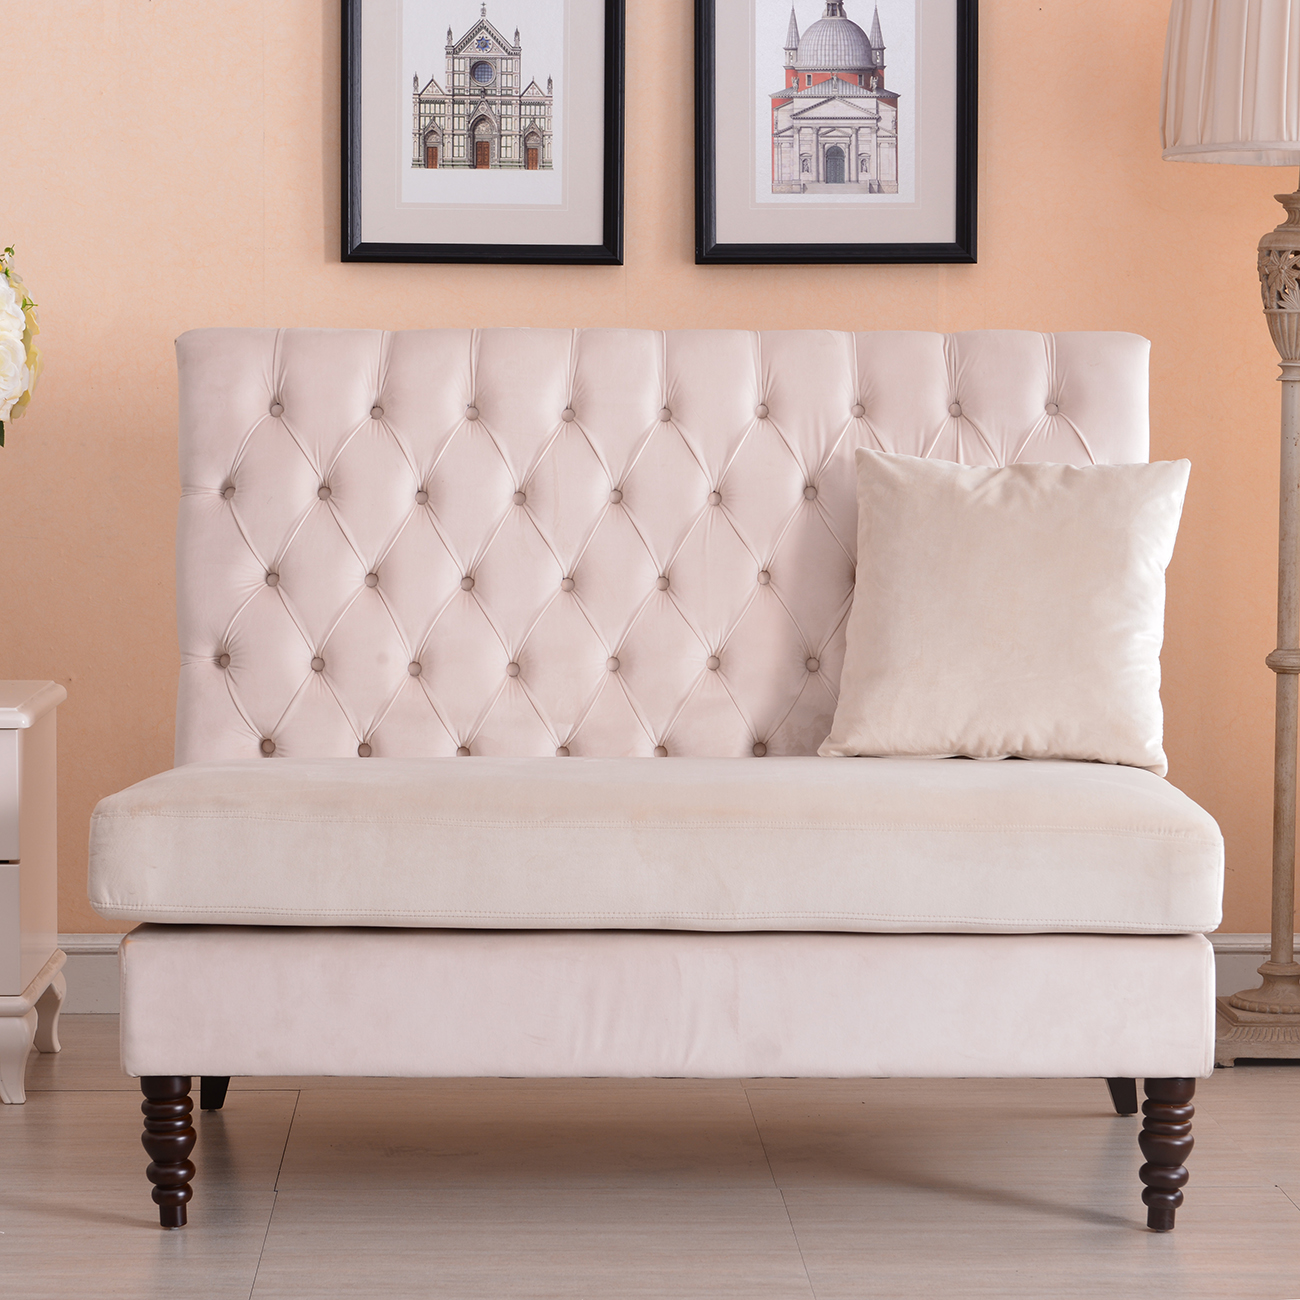 New modern tufted settee bedroom bench sofa high back for Bedroom loveseat